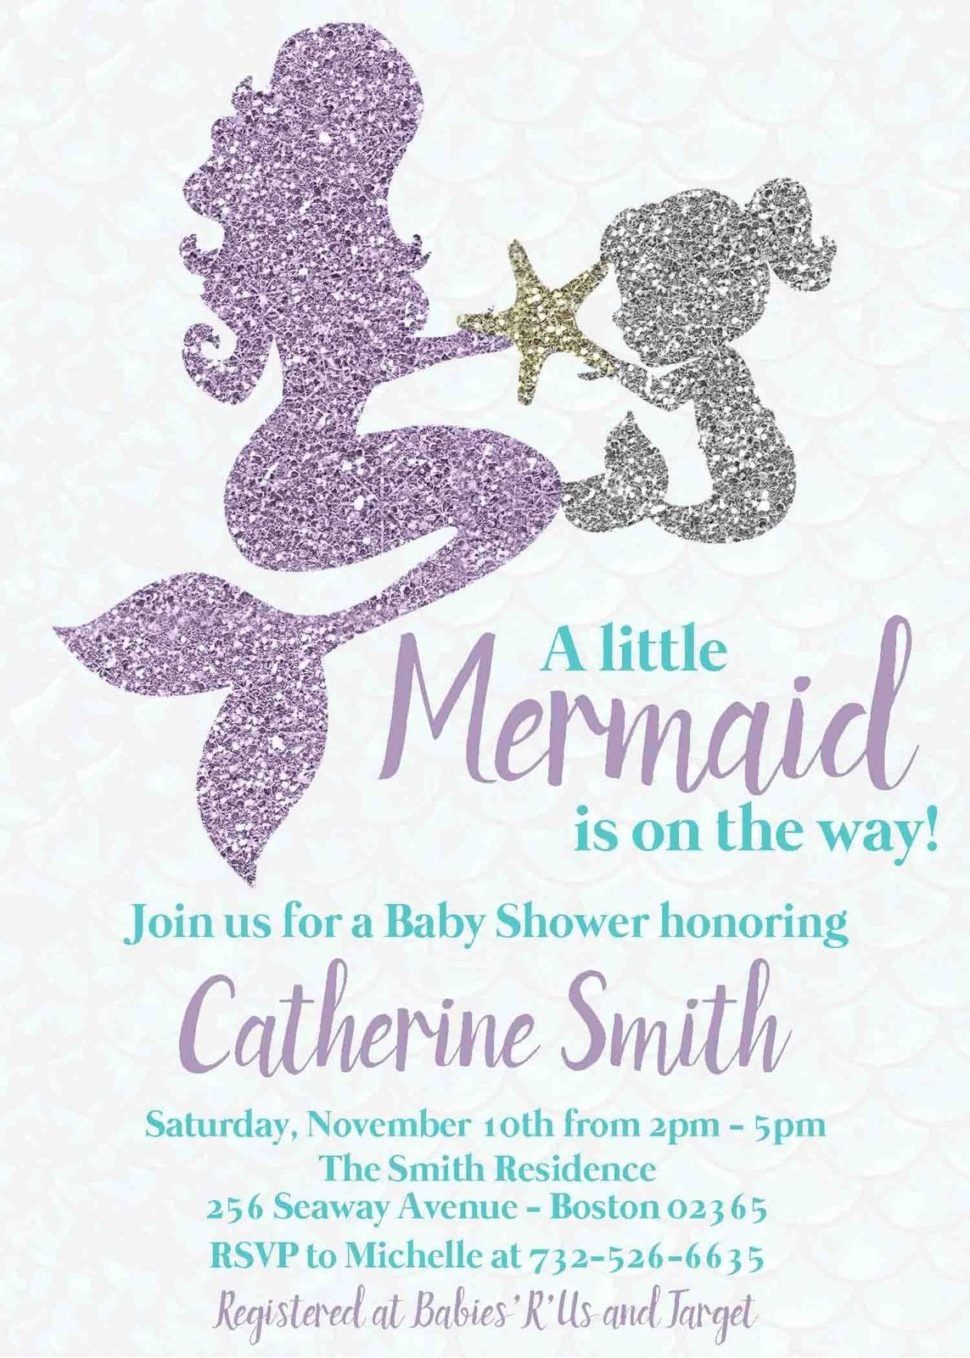 Medium Size of Baby Shower:baby Boy Shower Ideas Free Printable Baby Shower Games Free Baby Shower Ideas Unique Baby Shower Decorations Elegant Baby Shower Nursery For Girls Baby Shower Ideas Baby Shower Invitations For Boys